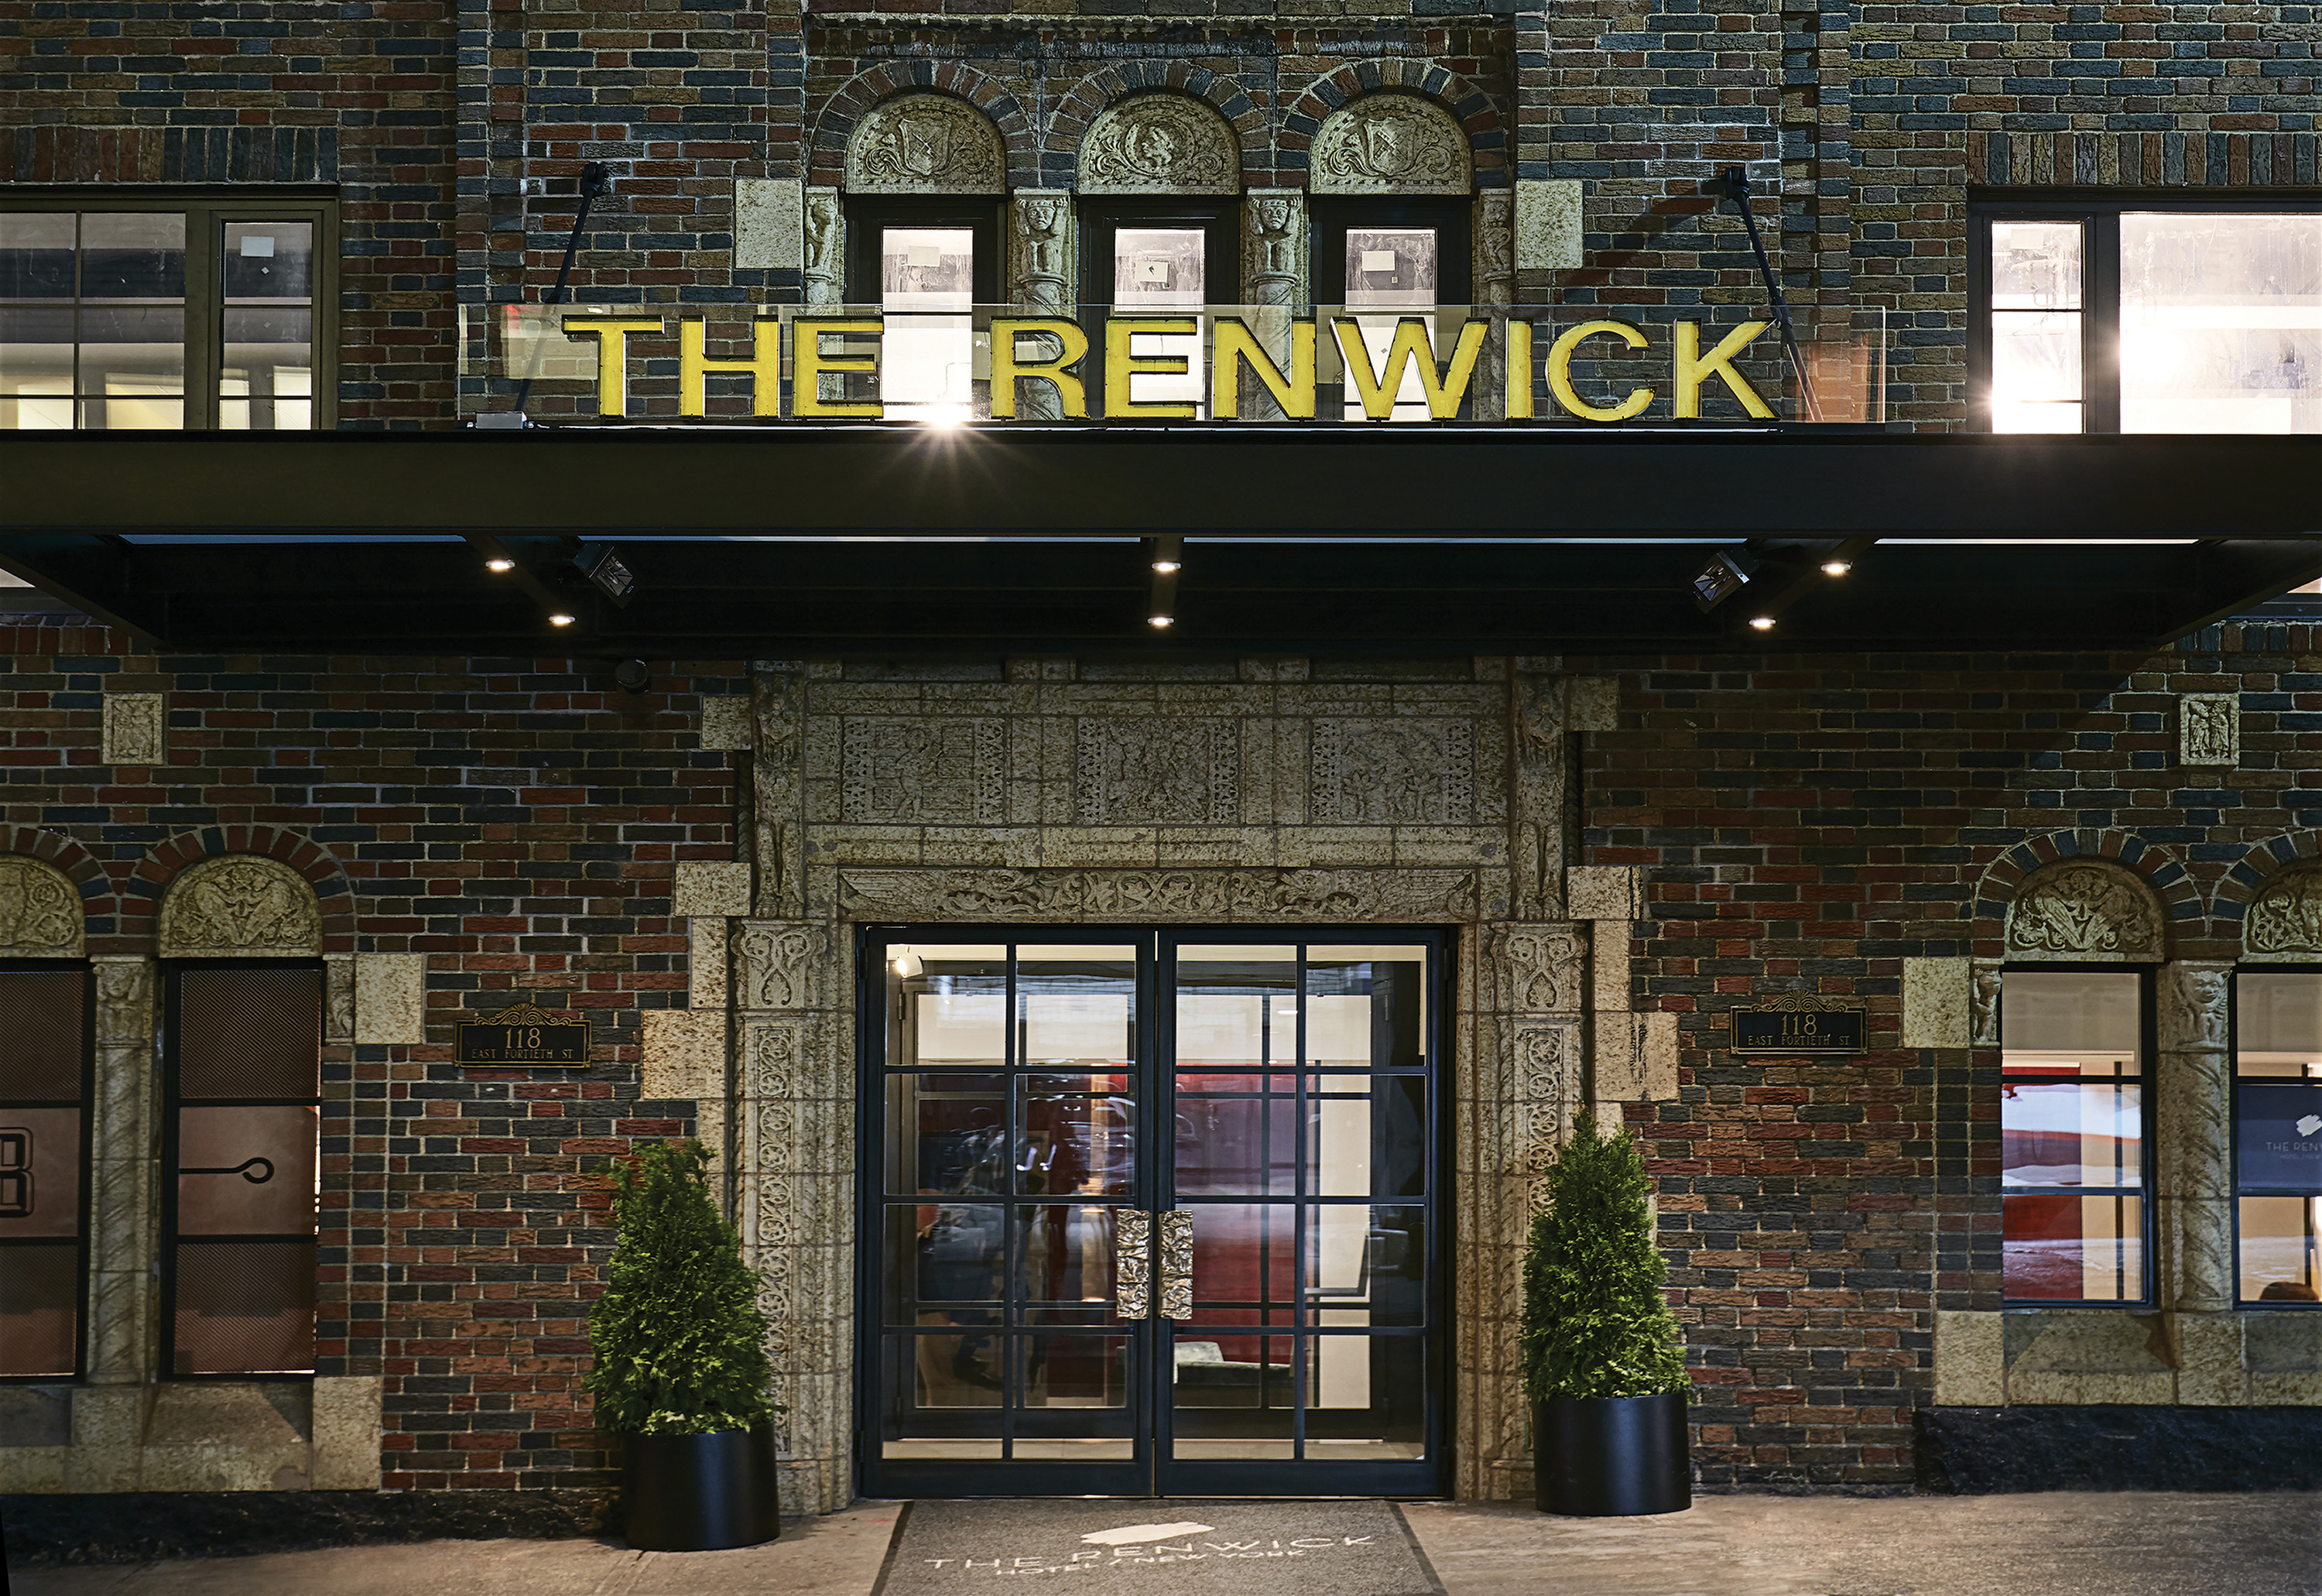 Hilton's Curio Collection Premieres in New York City with Art-Deco Renwick Hotel (Photo: Business Wire)